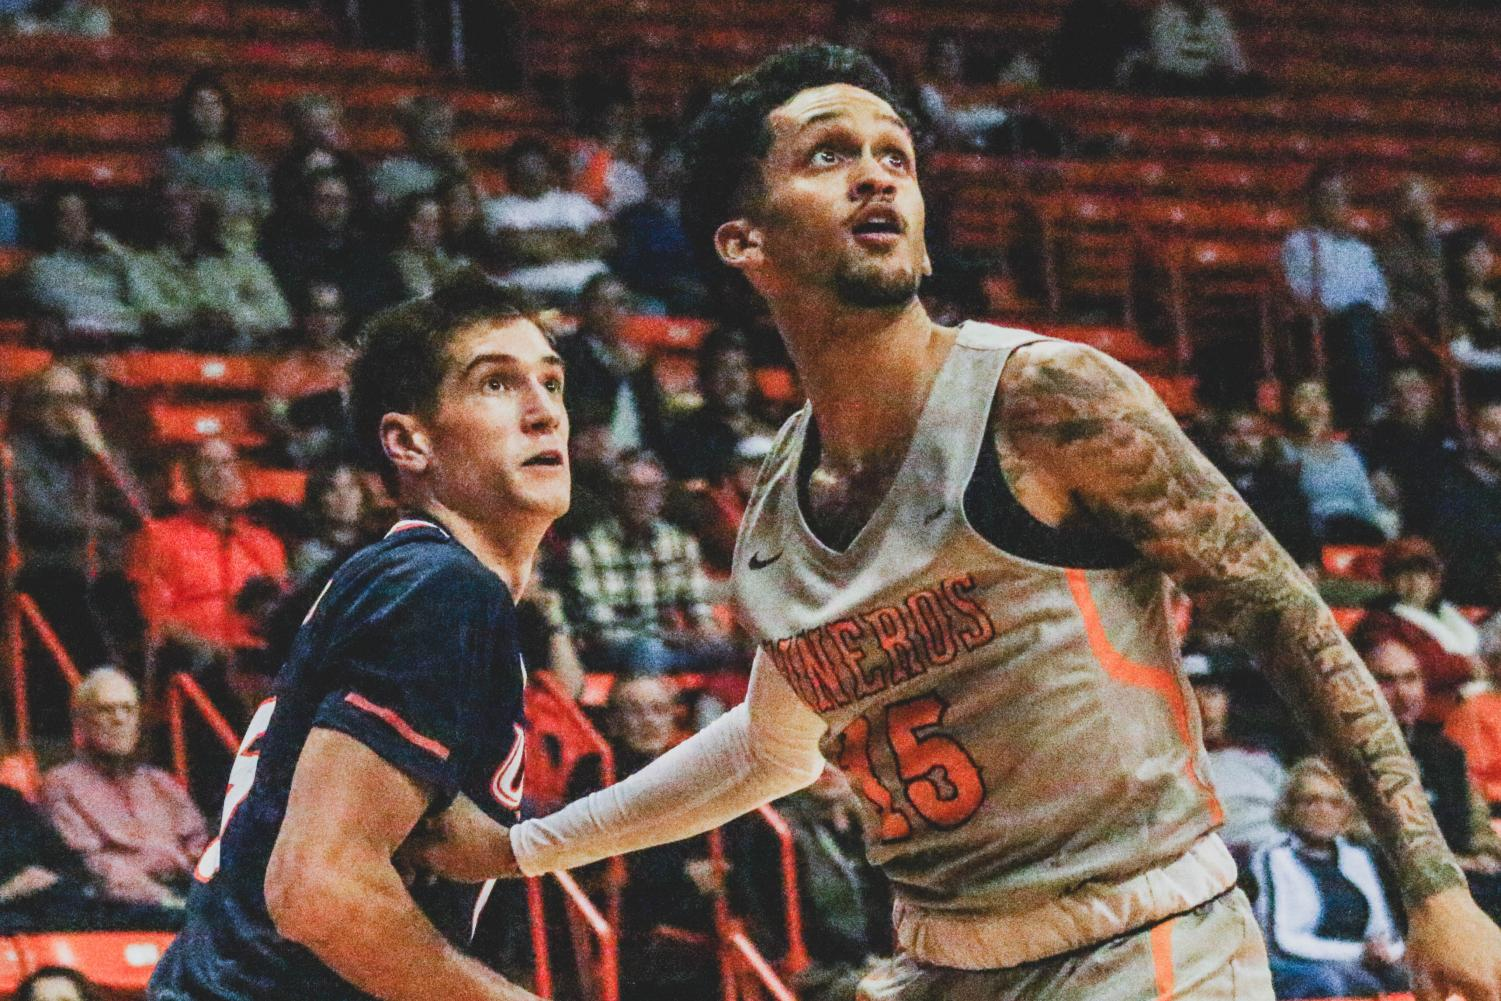 The Miners fall to UTSA 63-67 on Saturday night Jan. 5 at the Don Haskins Center.